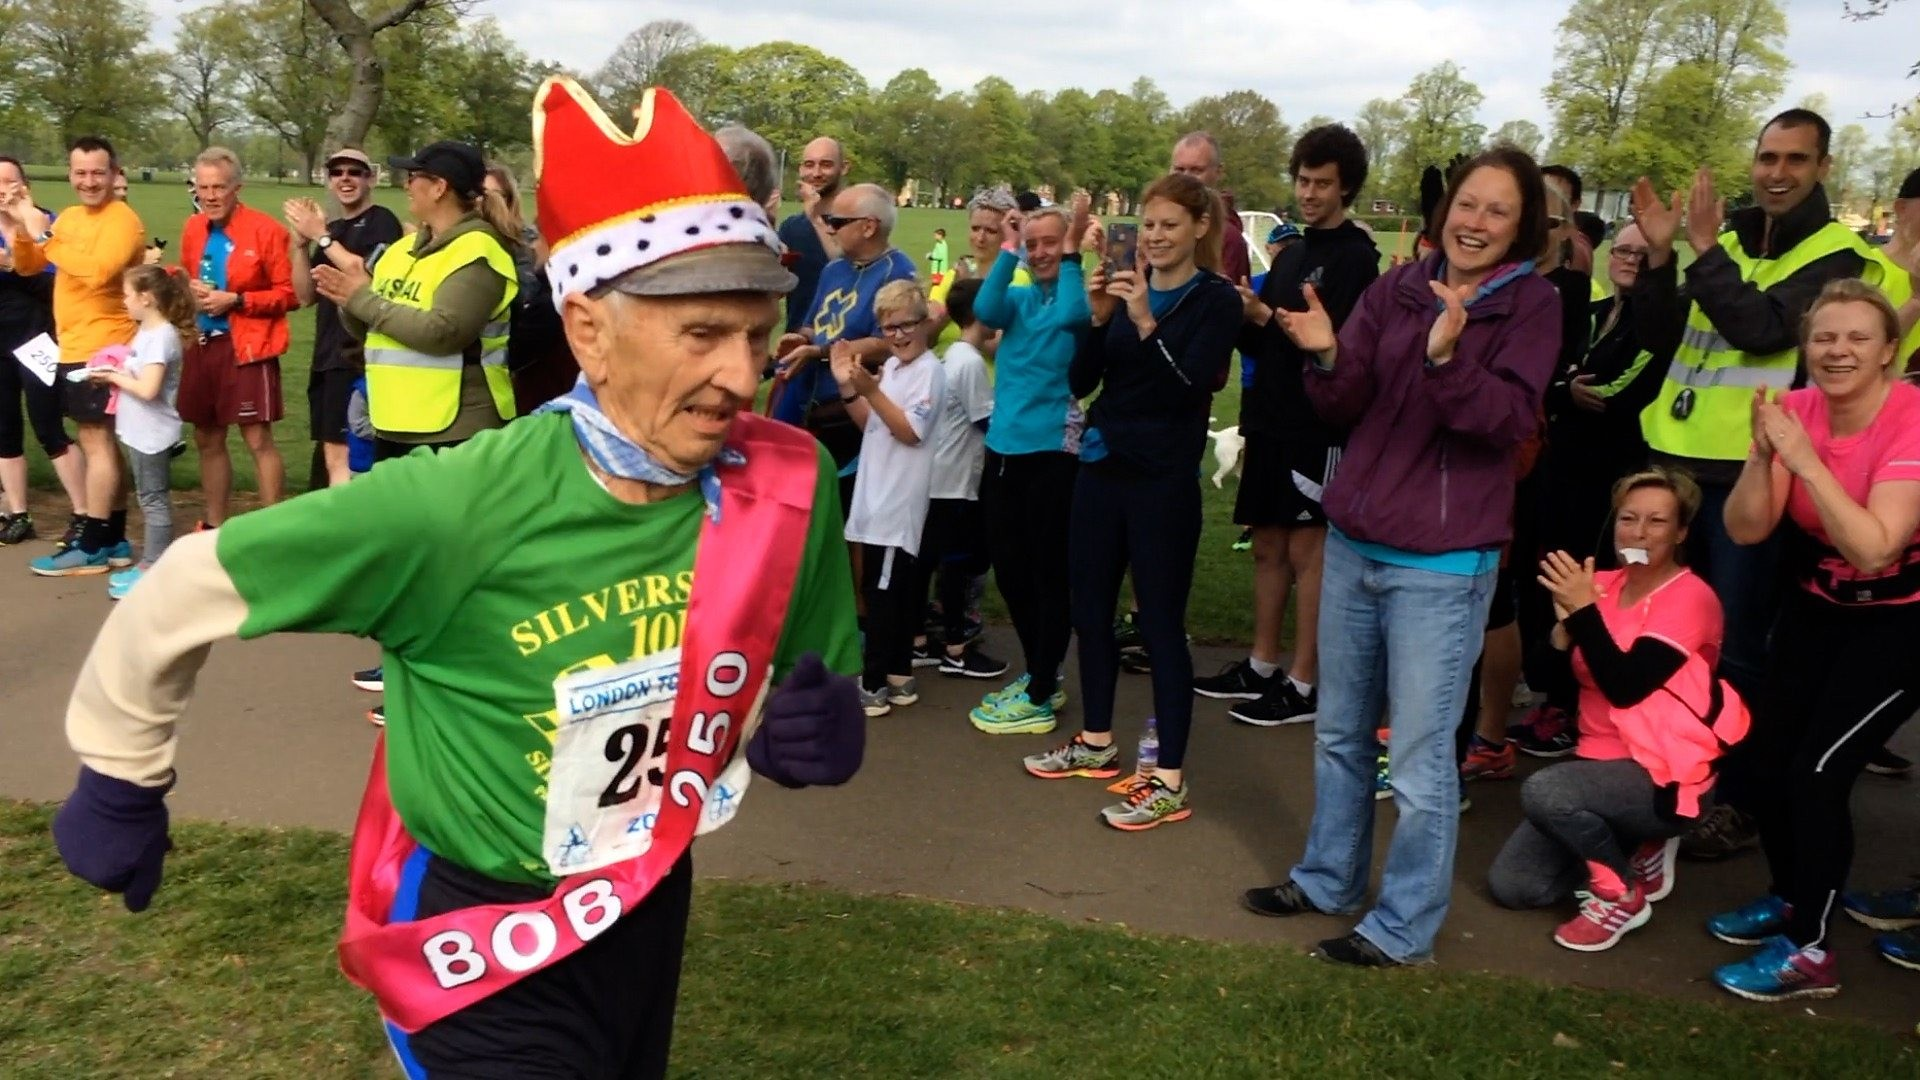 85-year-old Bob Emmerson has run 96 marathons and have logged in more than 110,000 miles